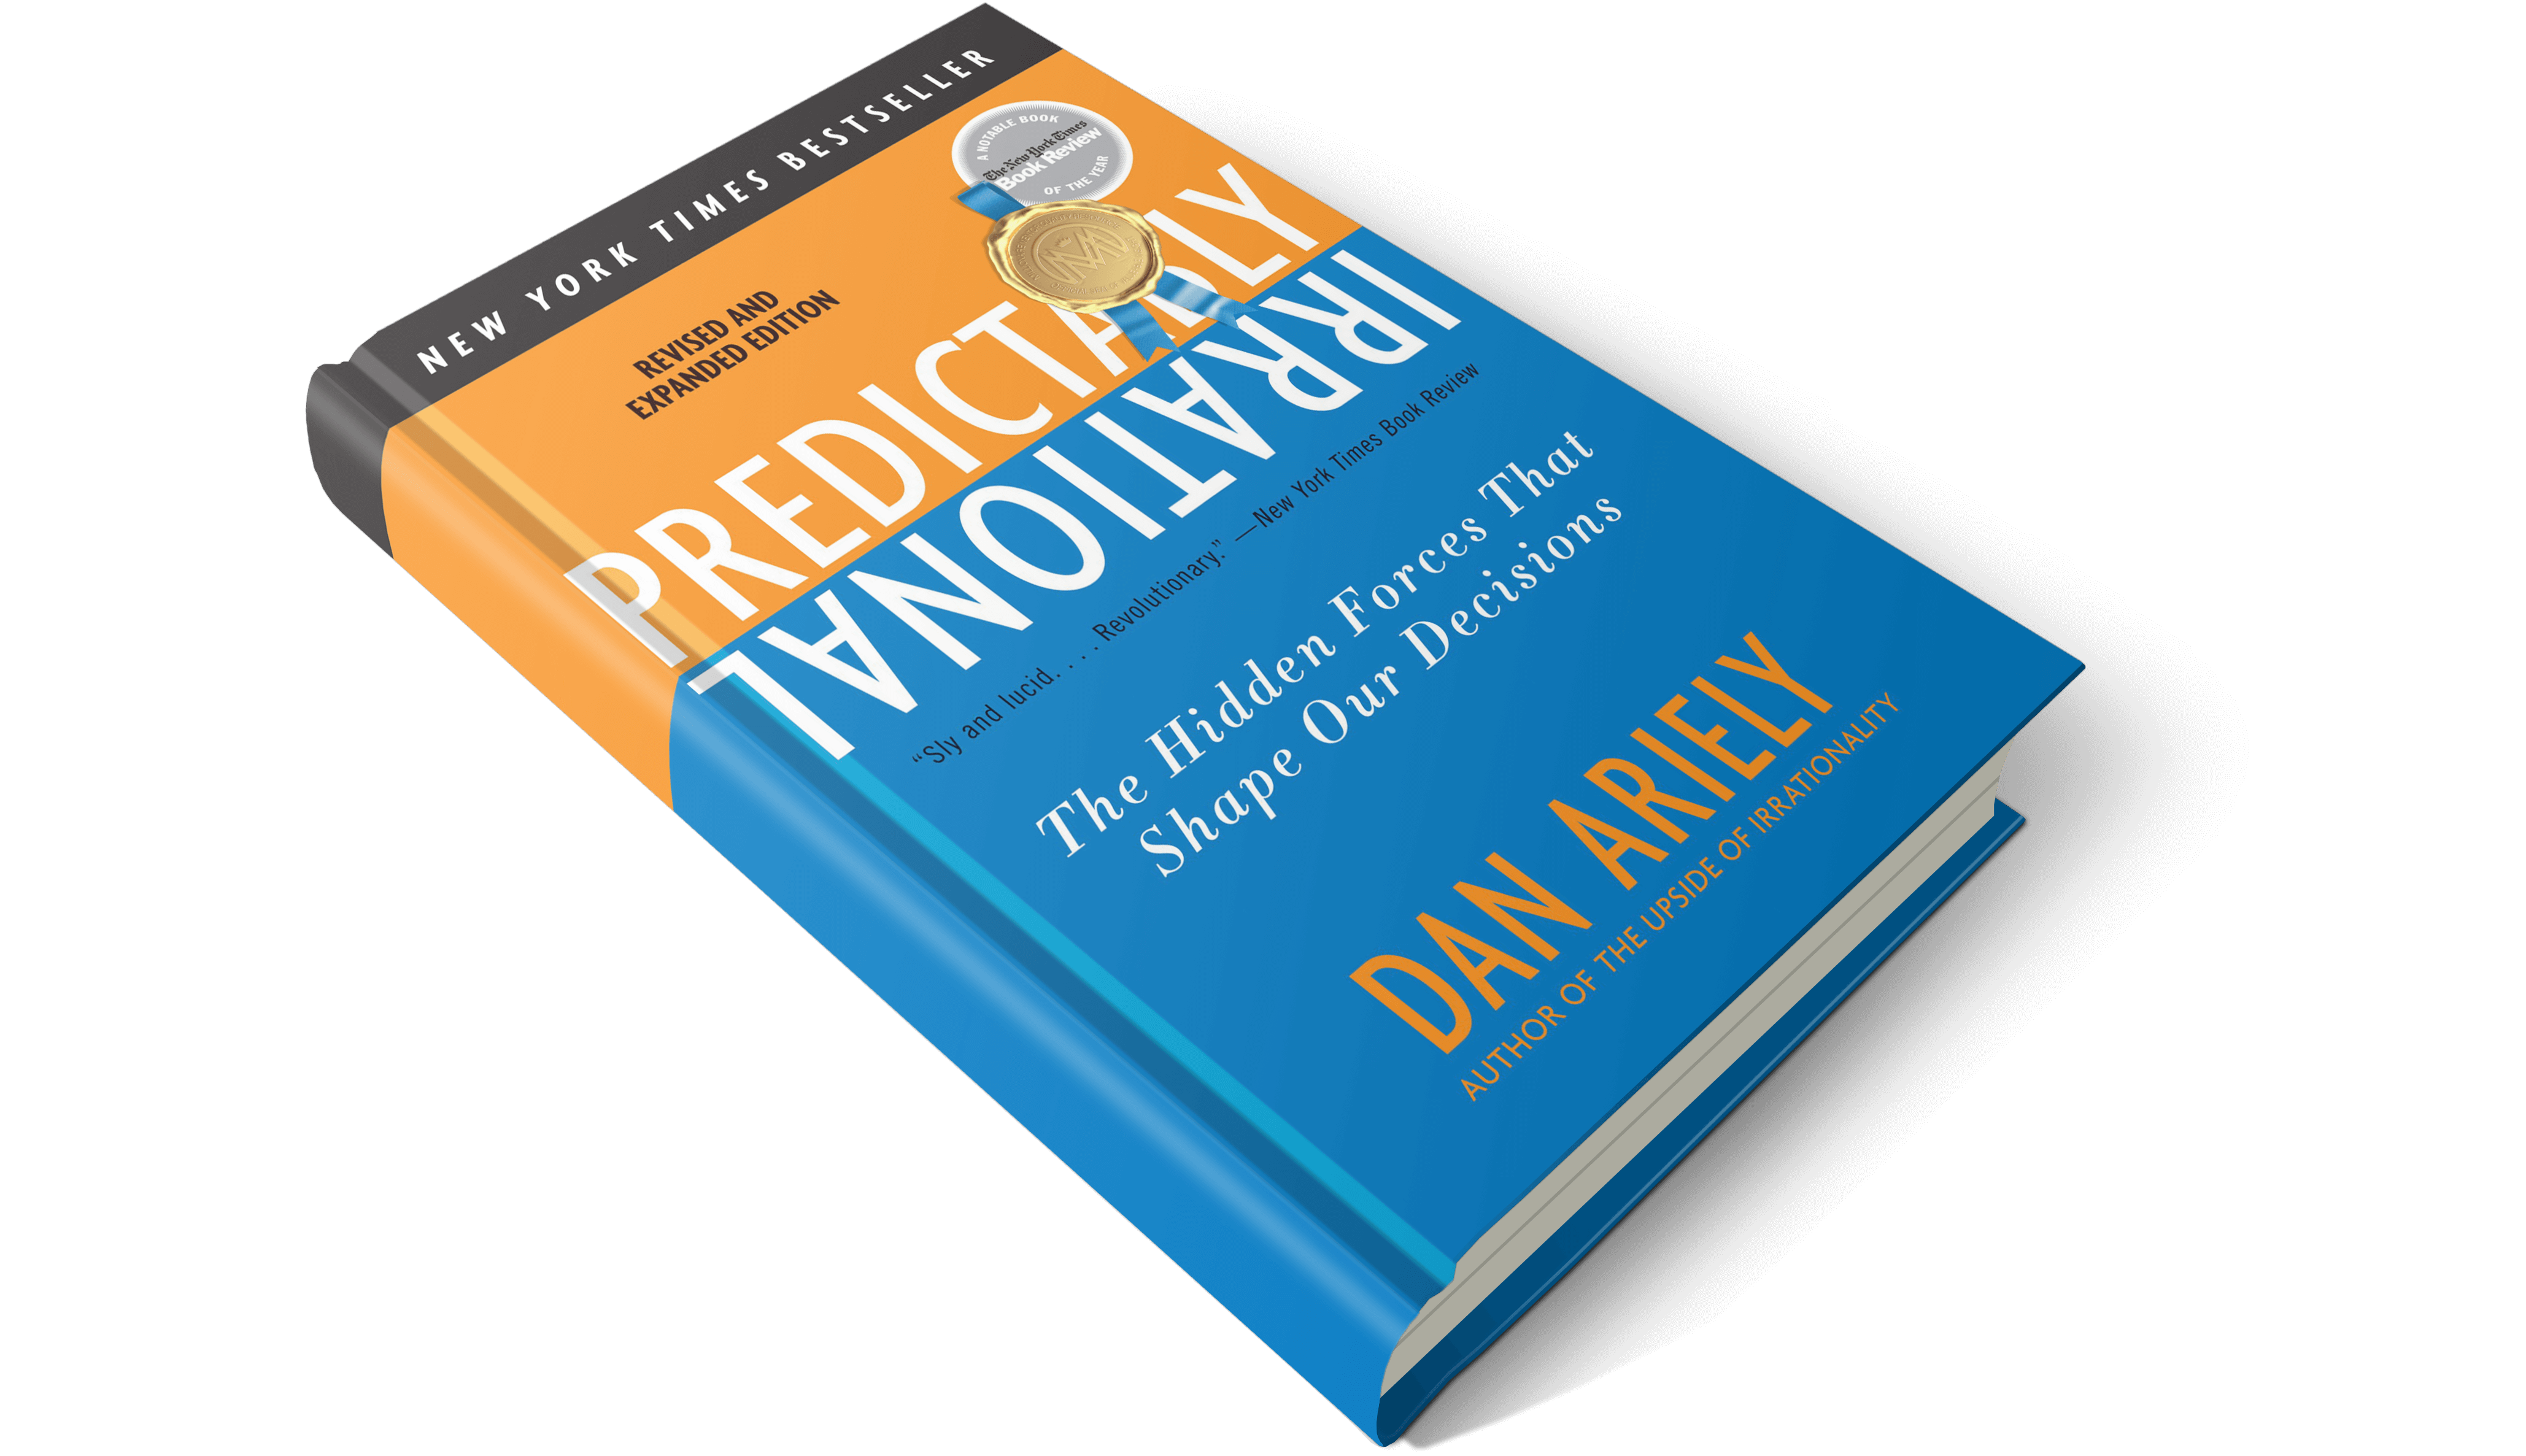 Predictably Irrational: Dan Ariely's insights into marketing & sales